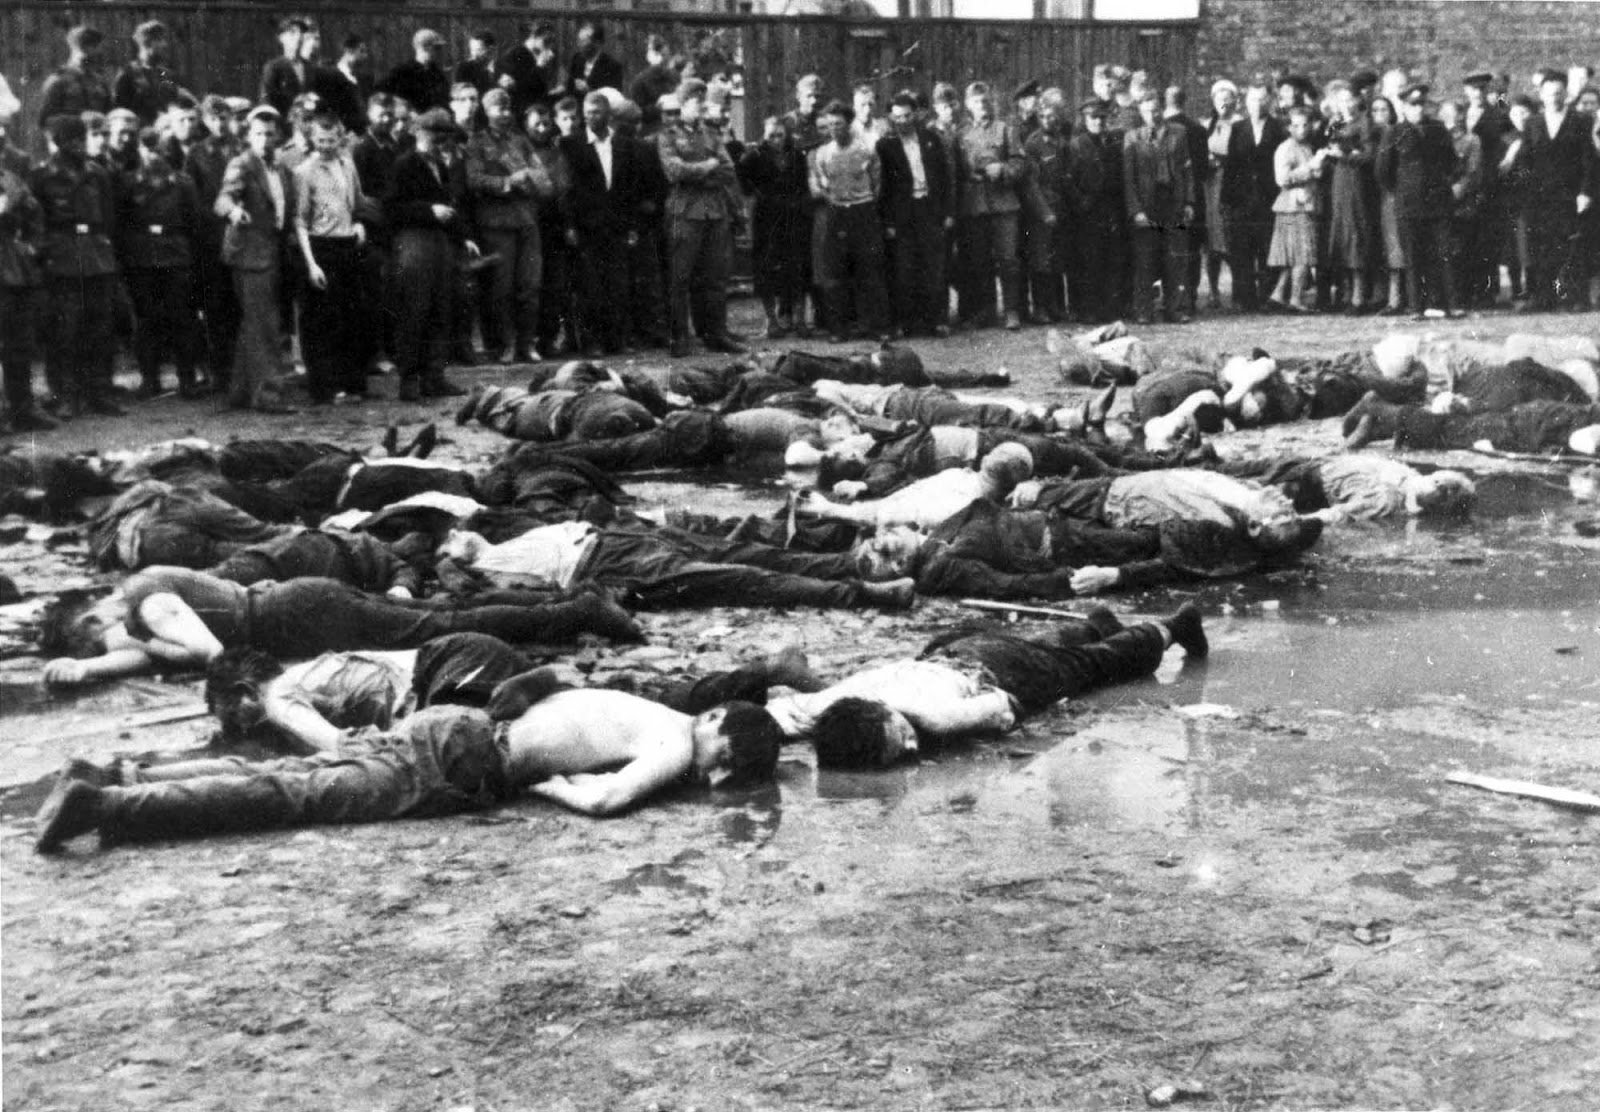 Crowd views the aftermath of a massacre at Lietukis Garage, where pro-German Lithuanian nationalists killed more than 40-60 Jewish men.